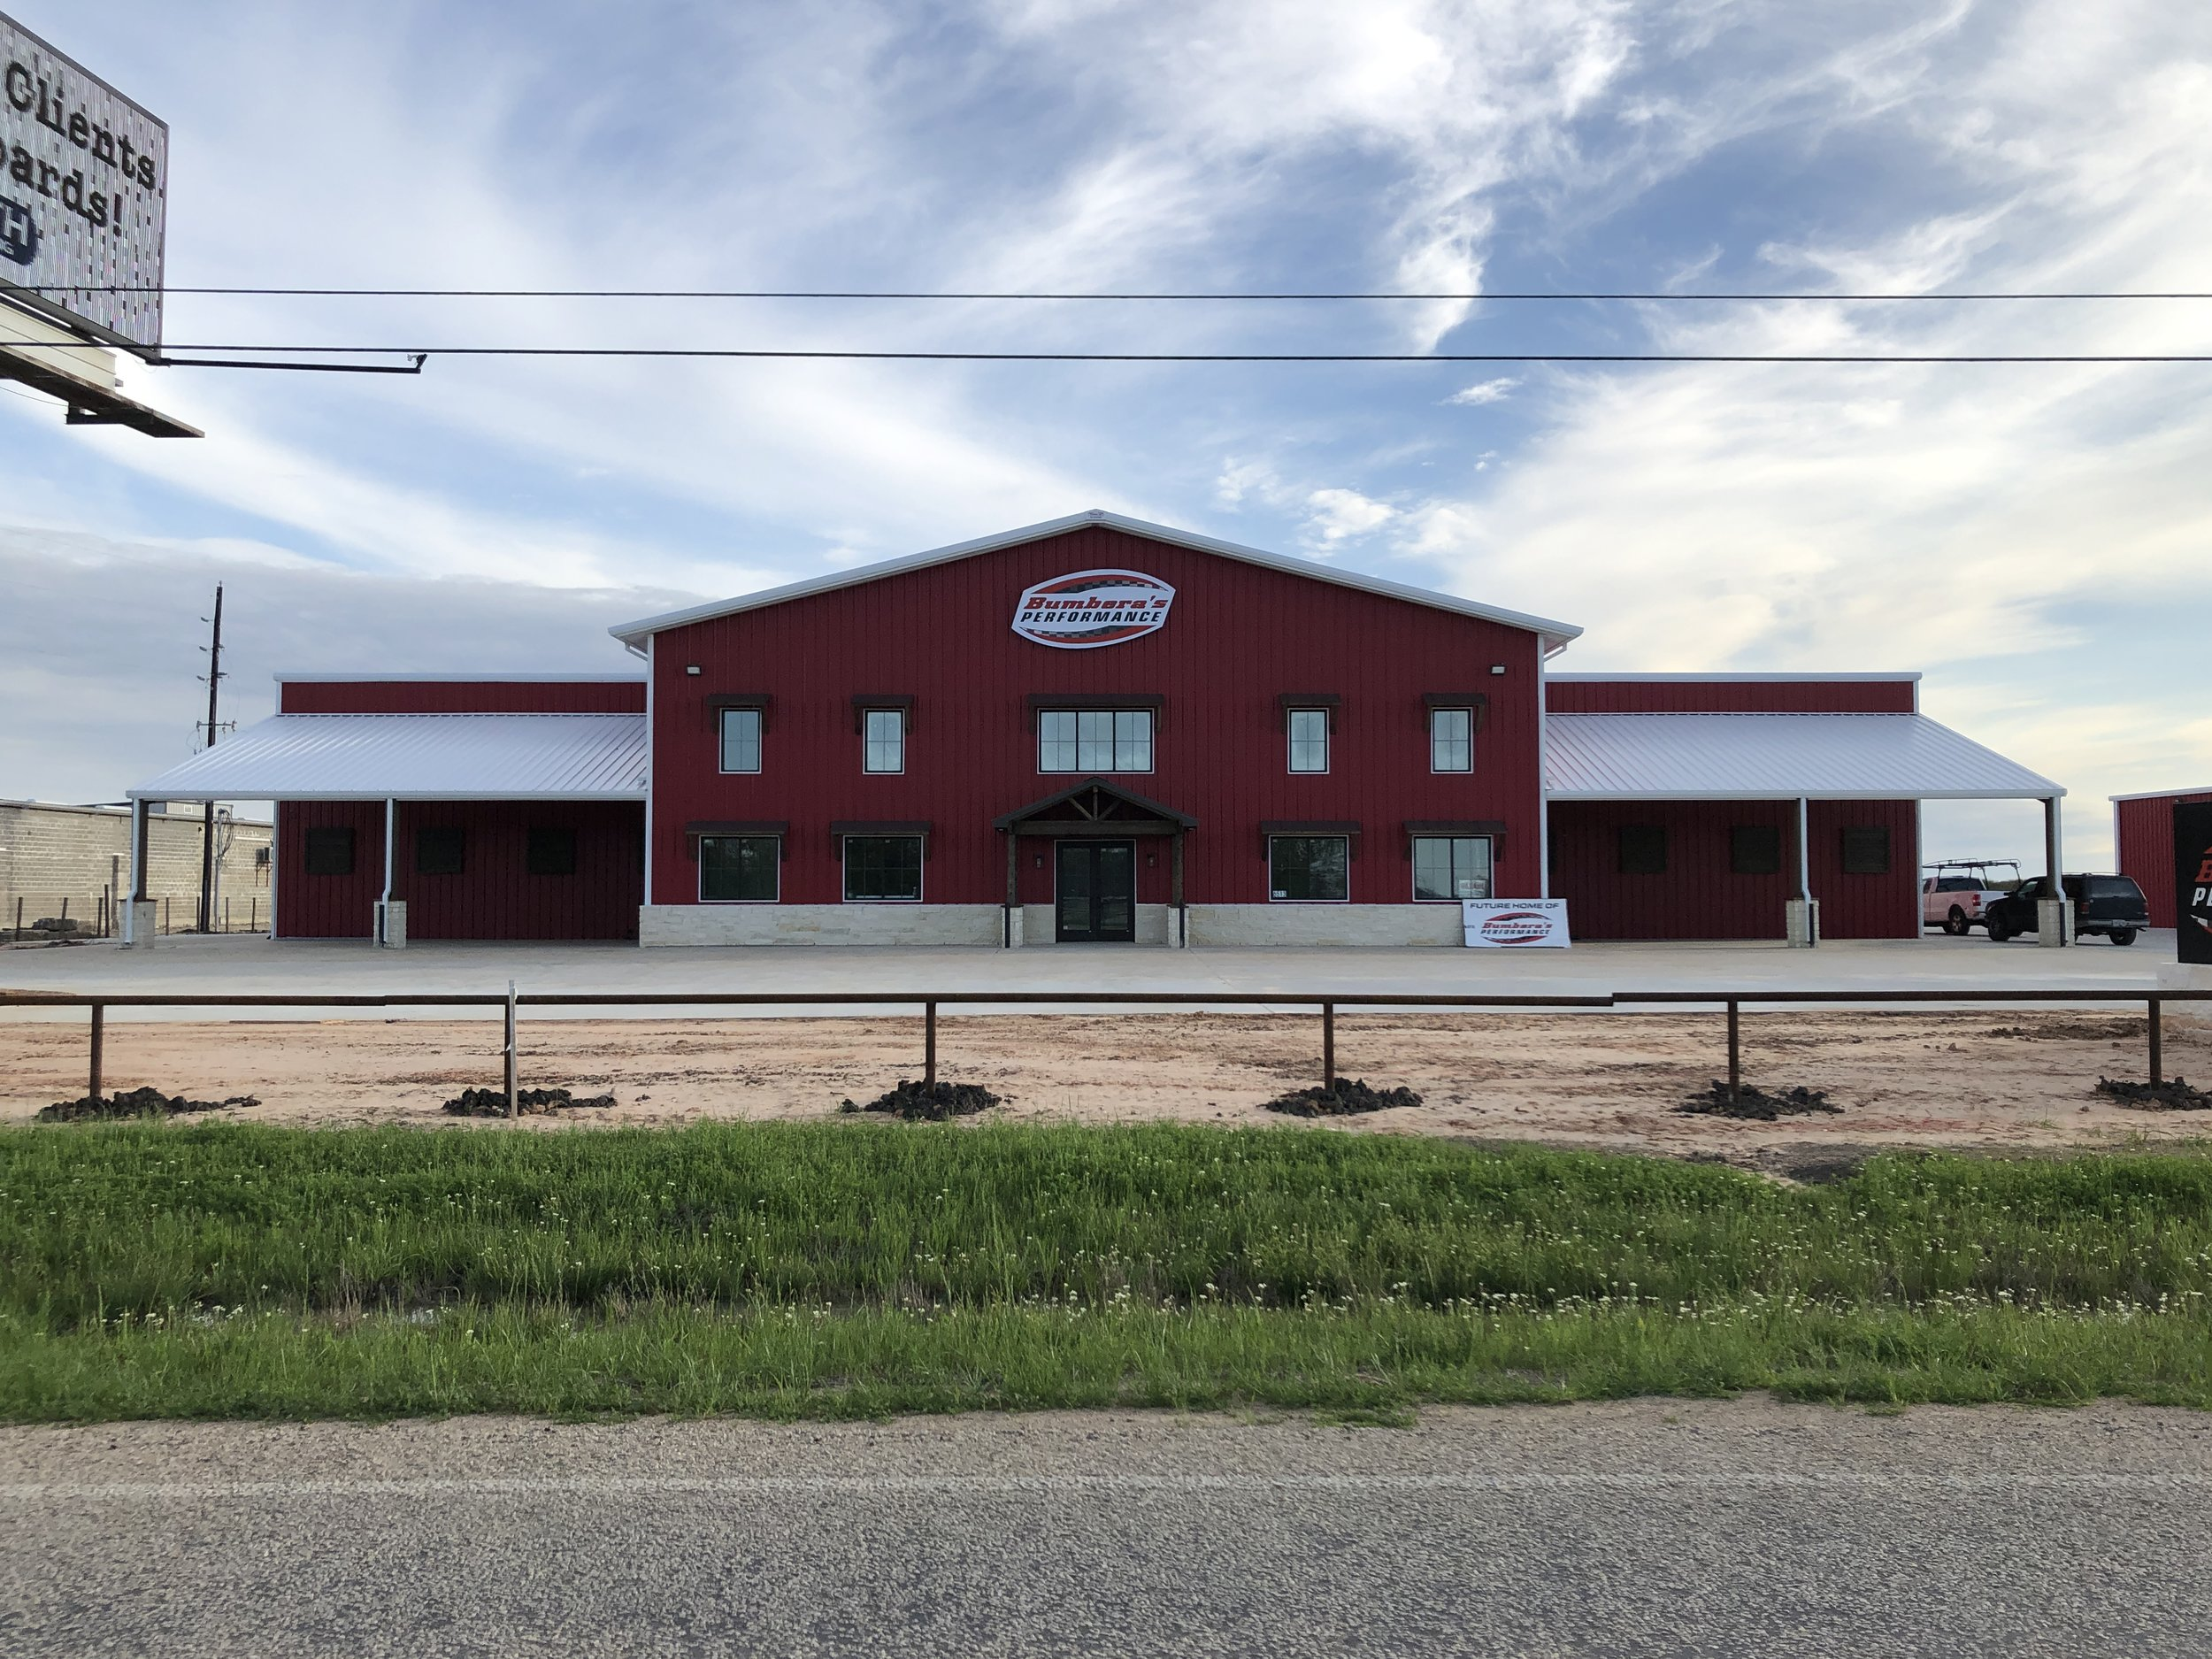 bumbera's new facility in Sealy, TX